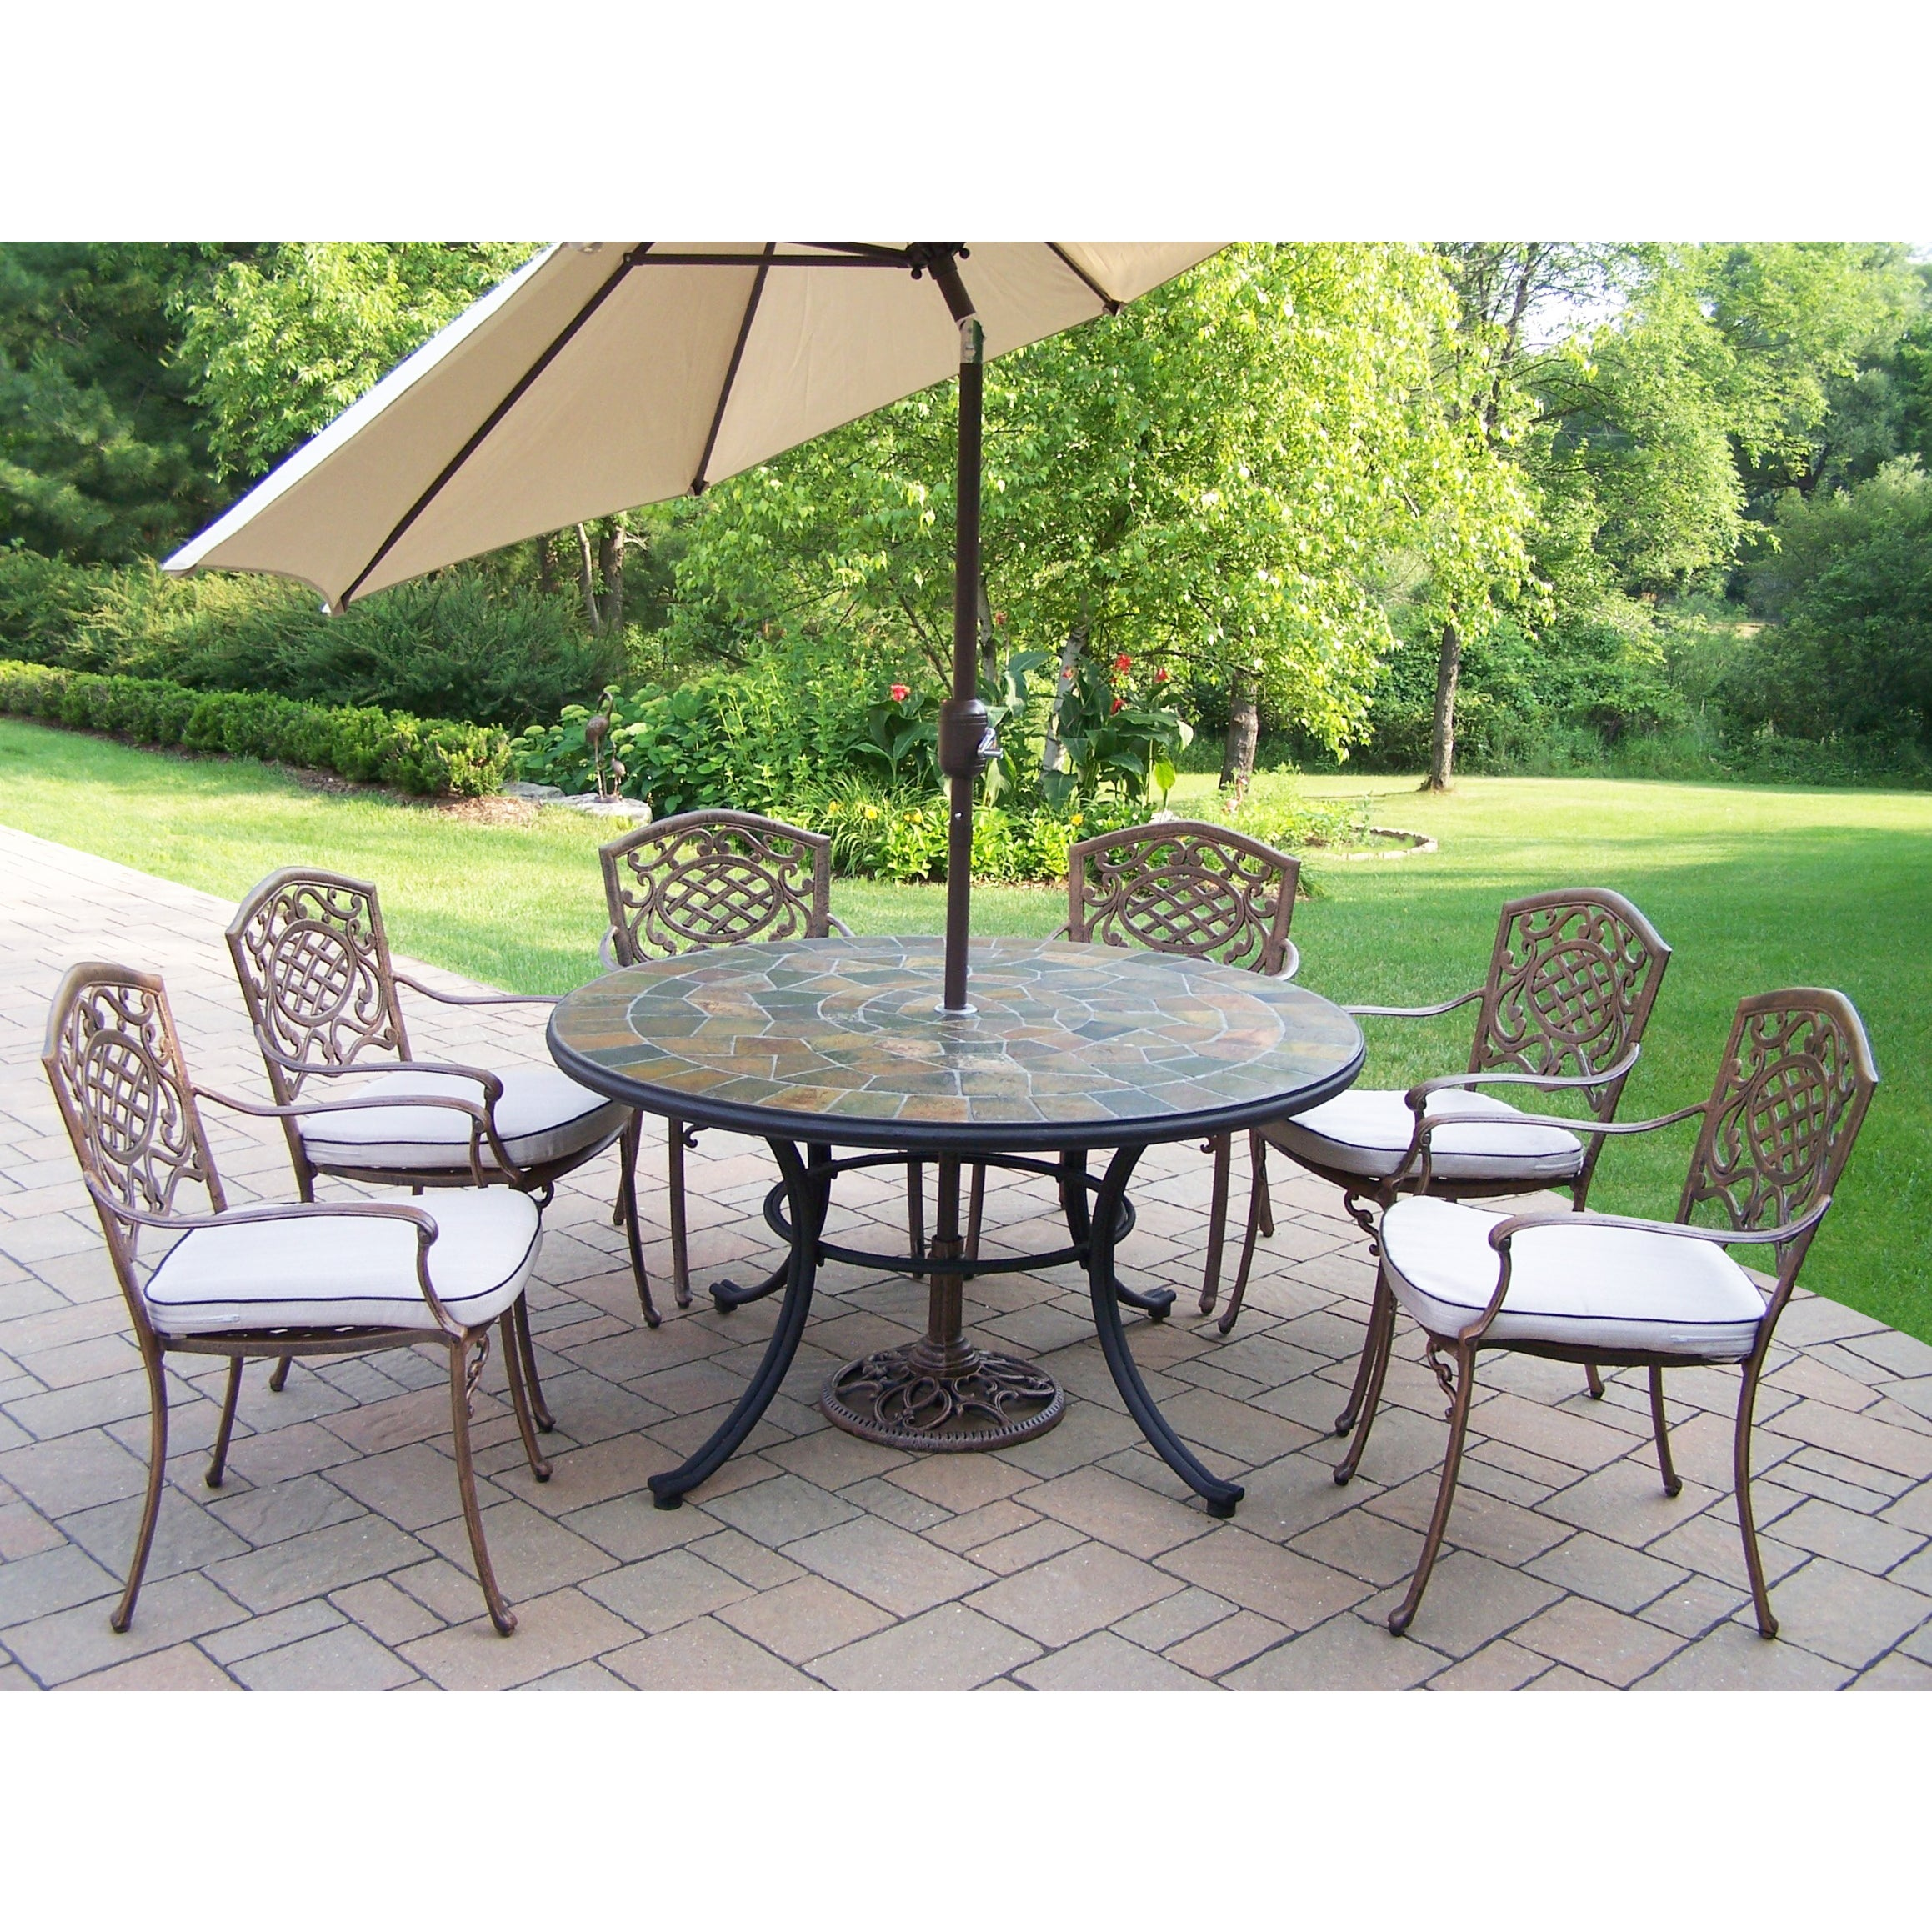 Dining Set With Stone Top Table Cushioned Chairs Umbrella And